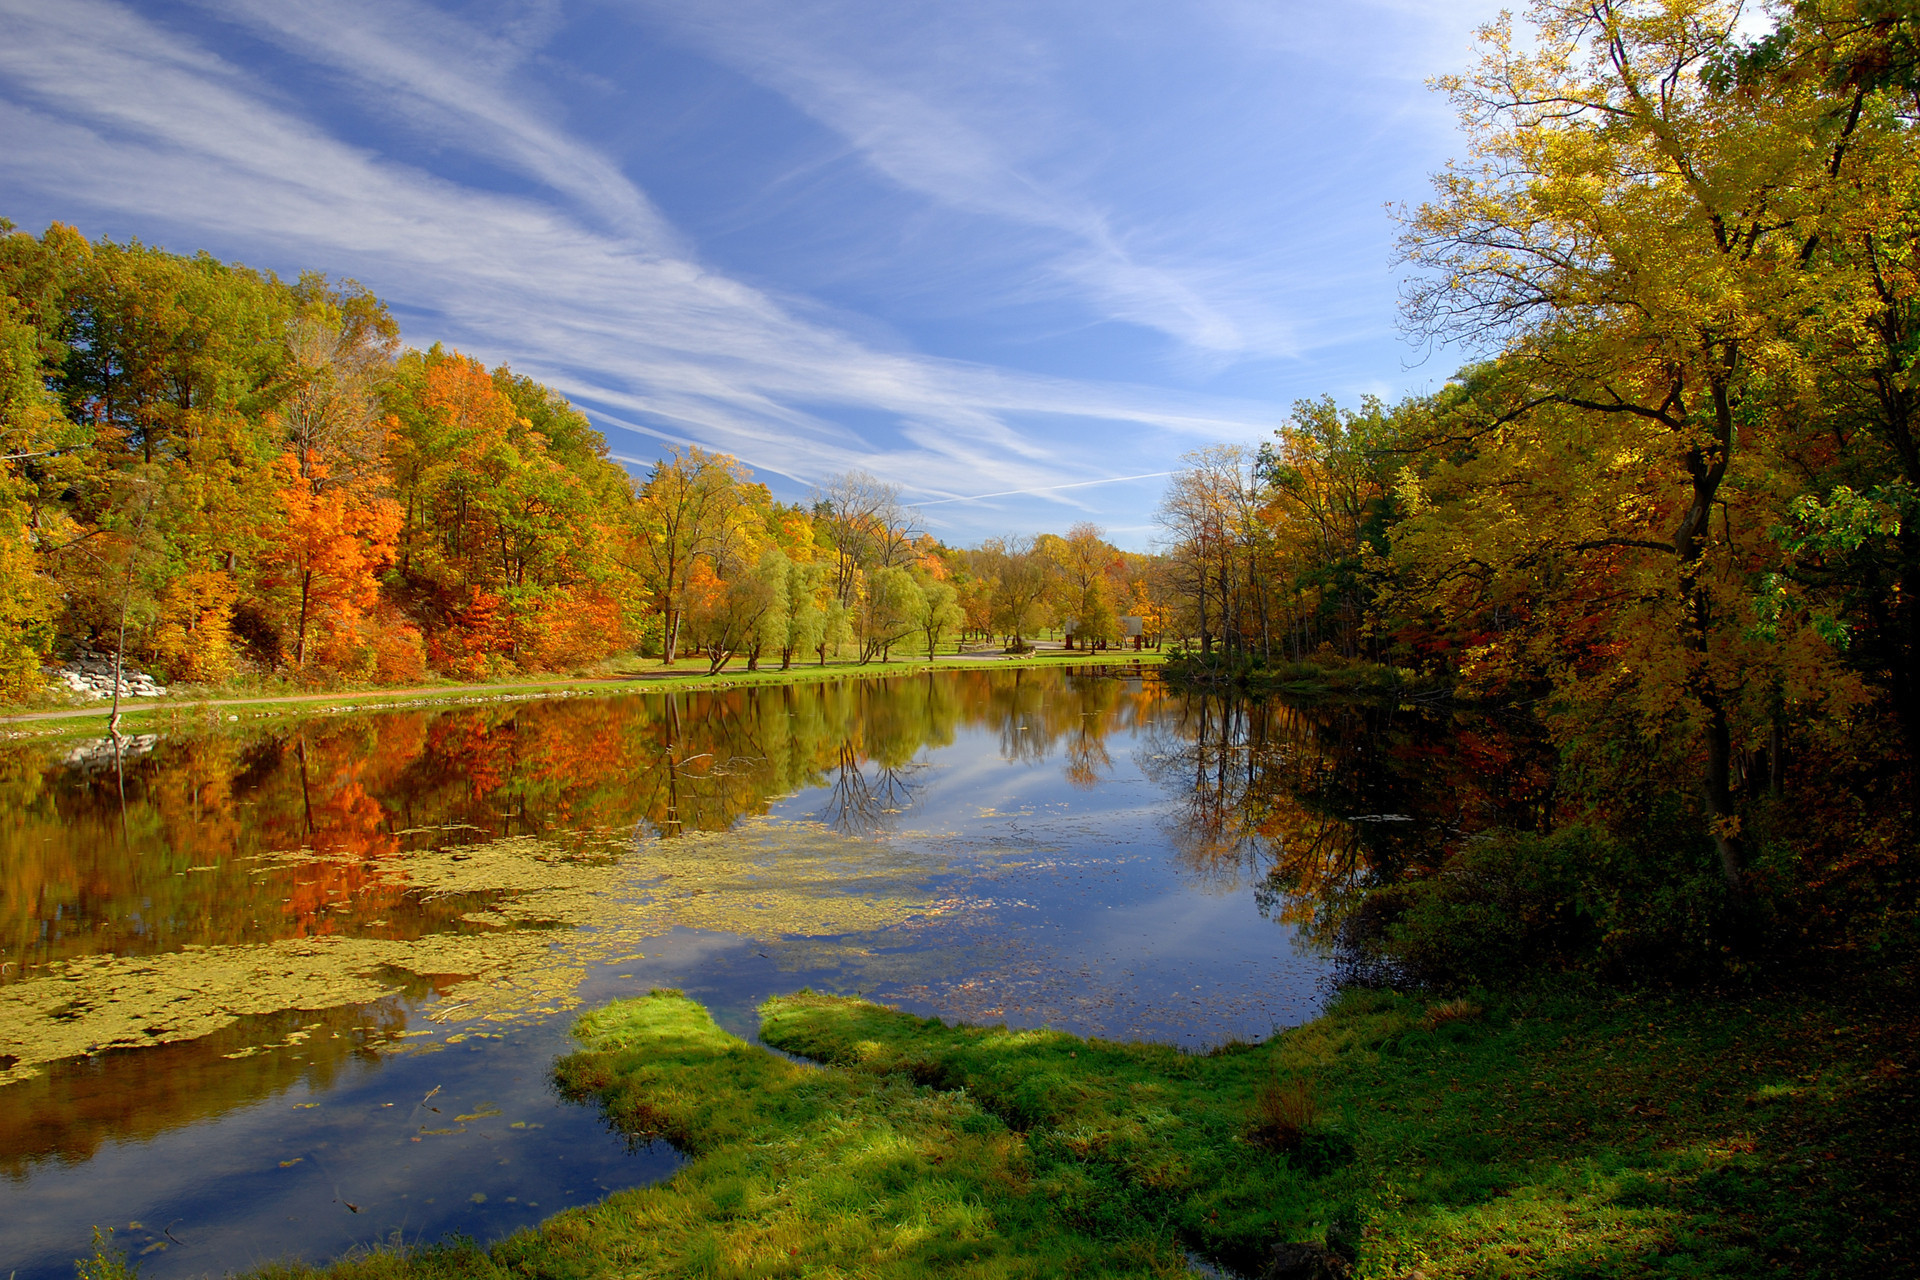 34554 download wallpaper Landscape, Rivers, Autumn screensavers and pictures for free